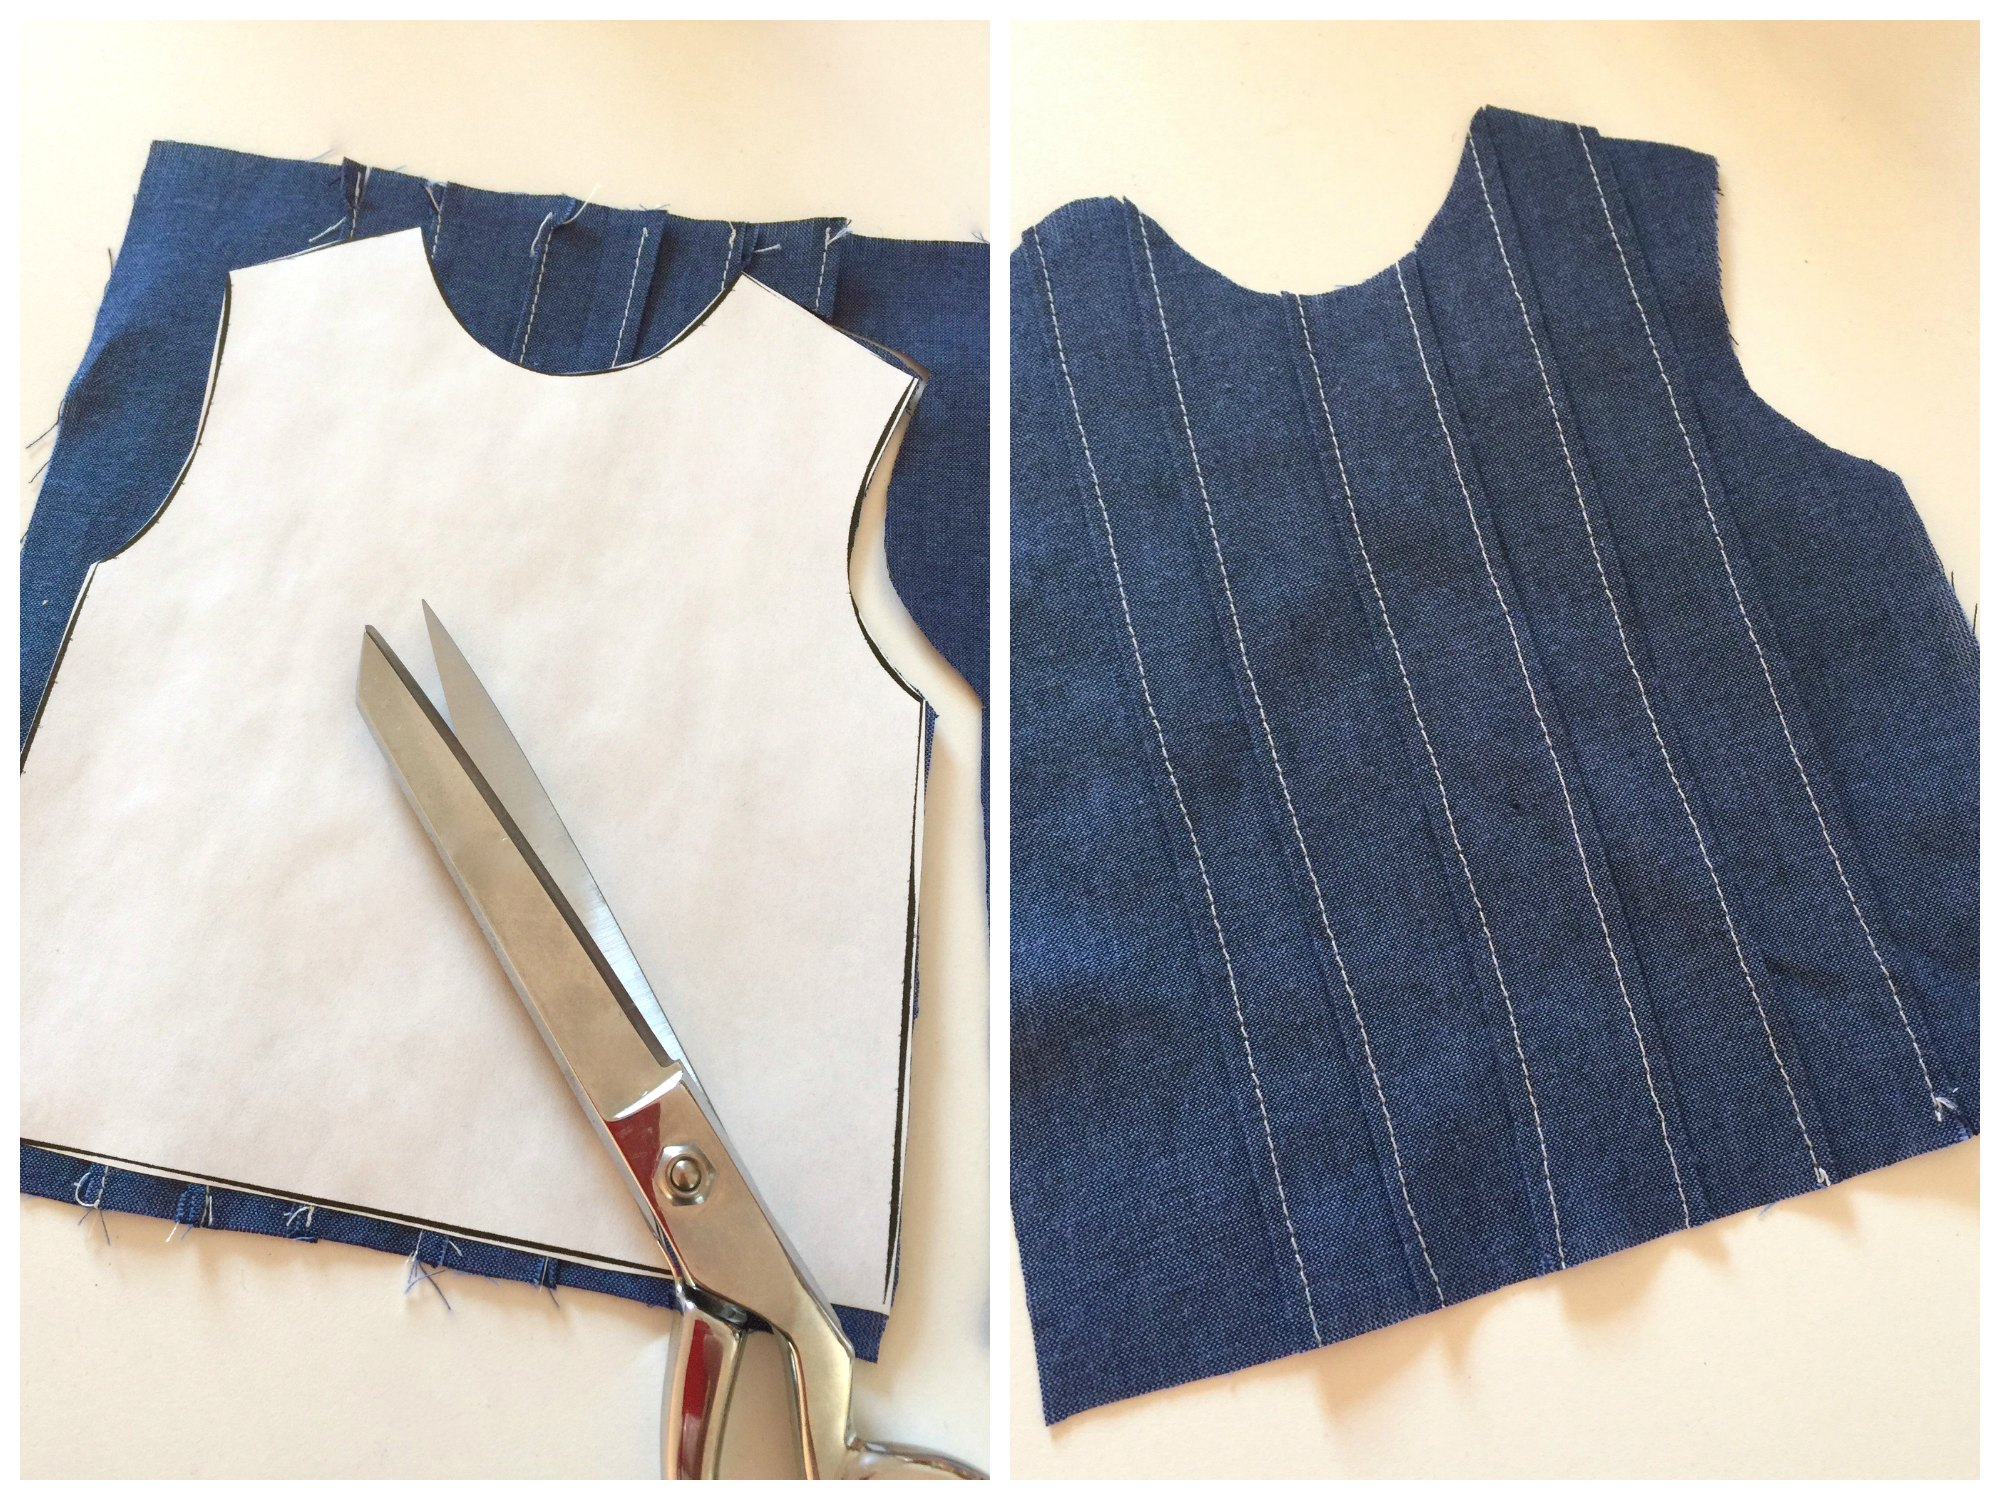 Placing and cutting the bodice